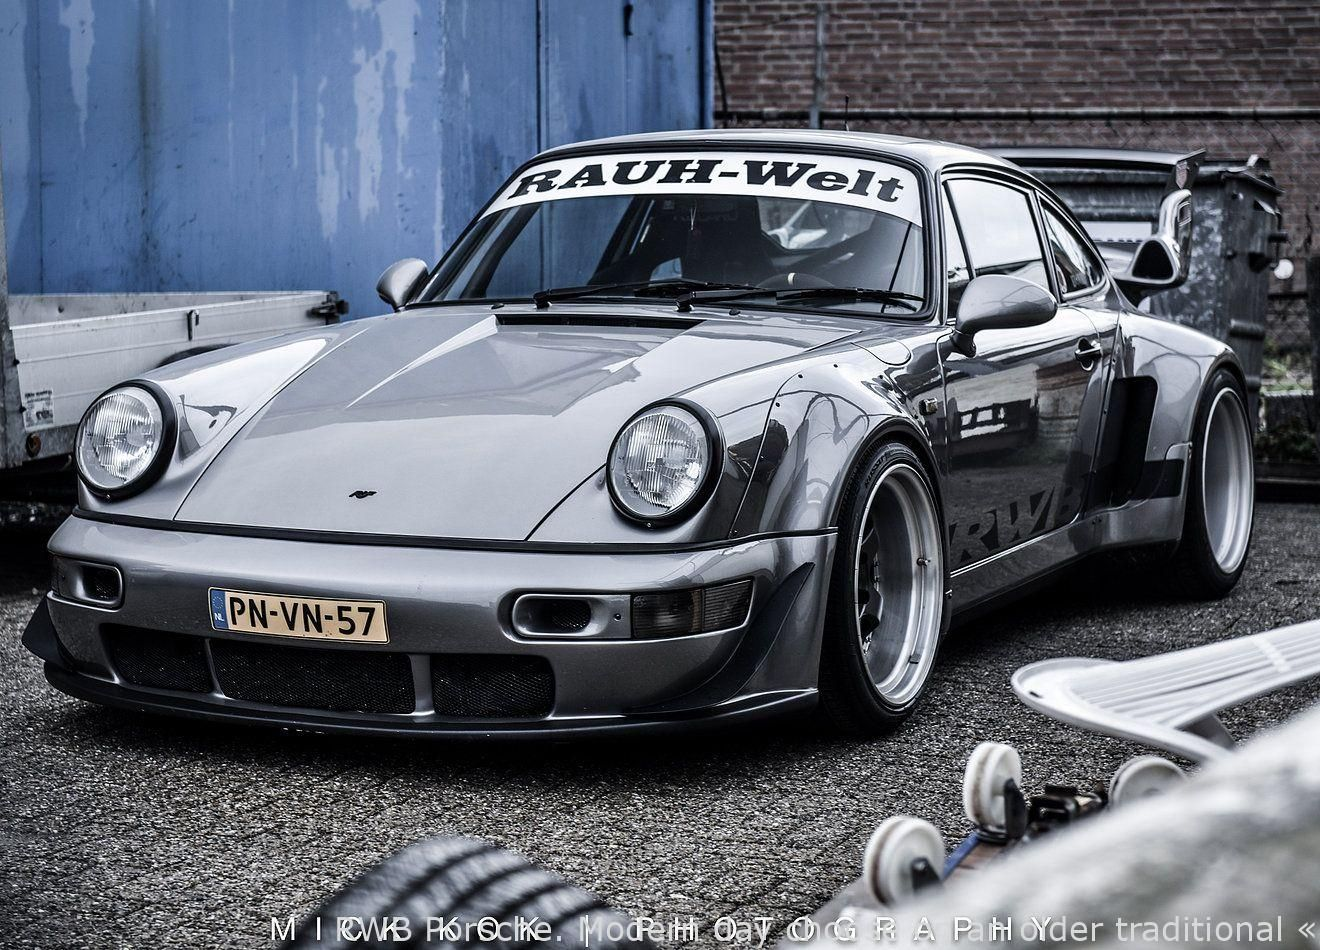 #Cars  – RWB Porsche. Modern take on an older classic – now